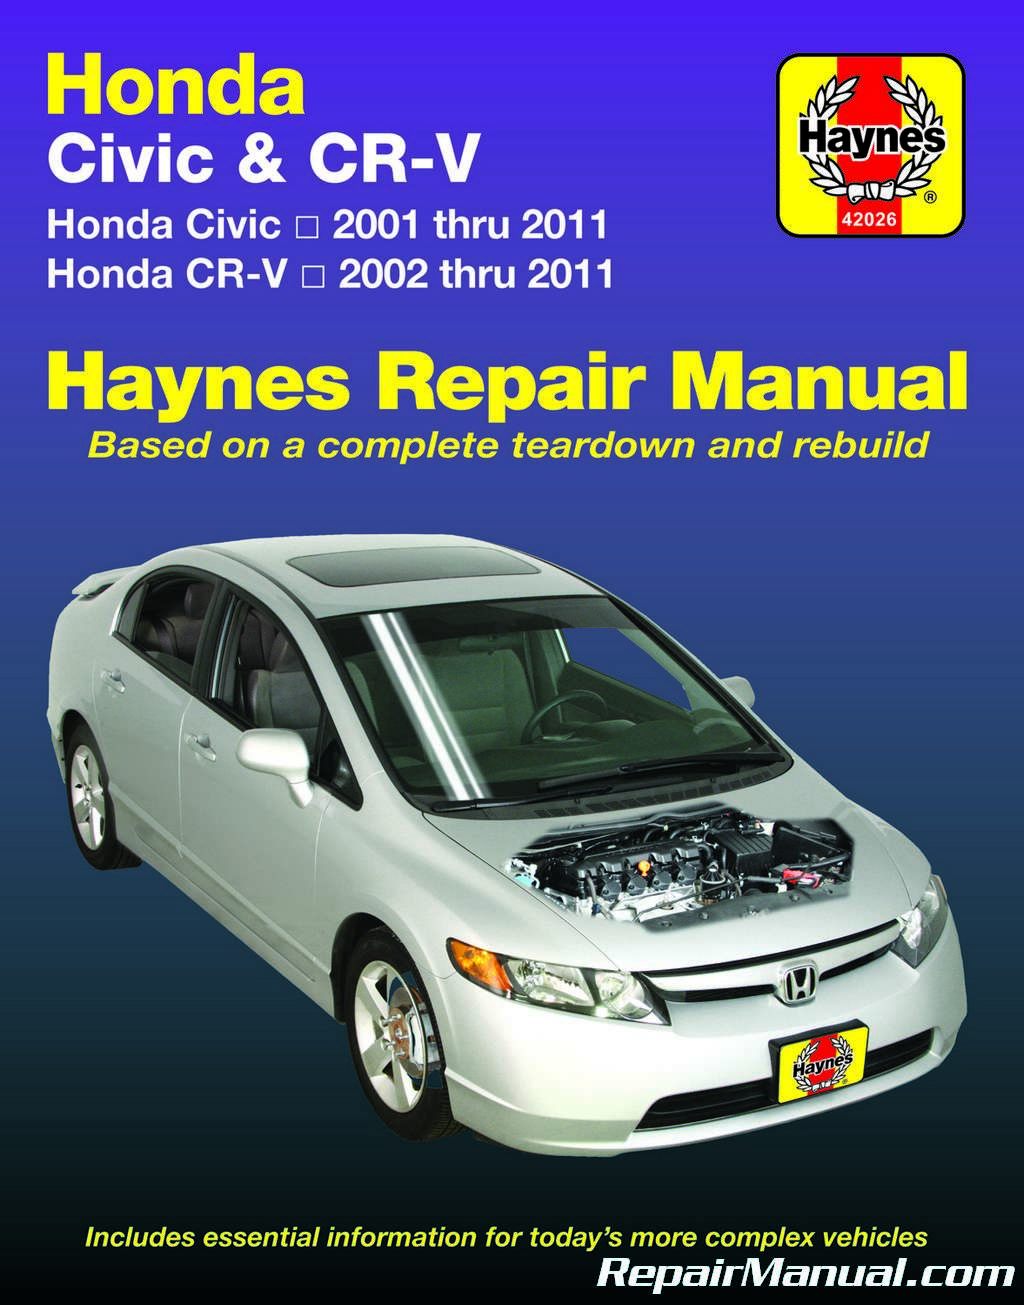 haynes honda civic 2001 2011 cr v 2002 2011 car service repair manual rh repairmanual com haynes manual honda civic 2006 haynes manual honda accord